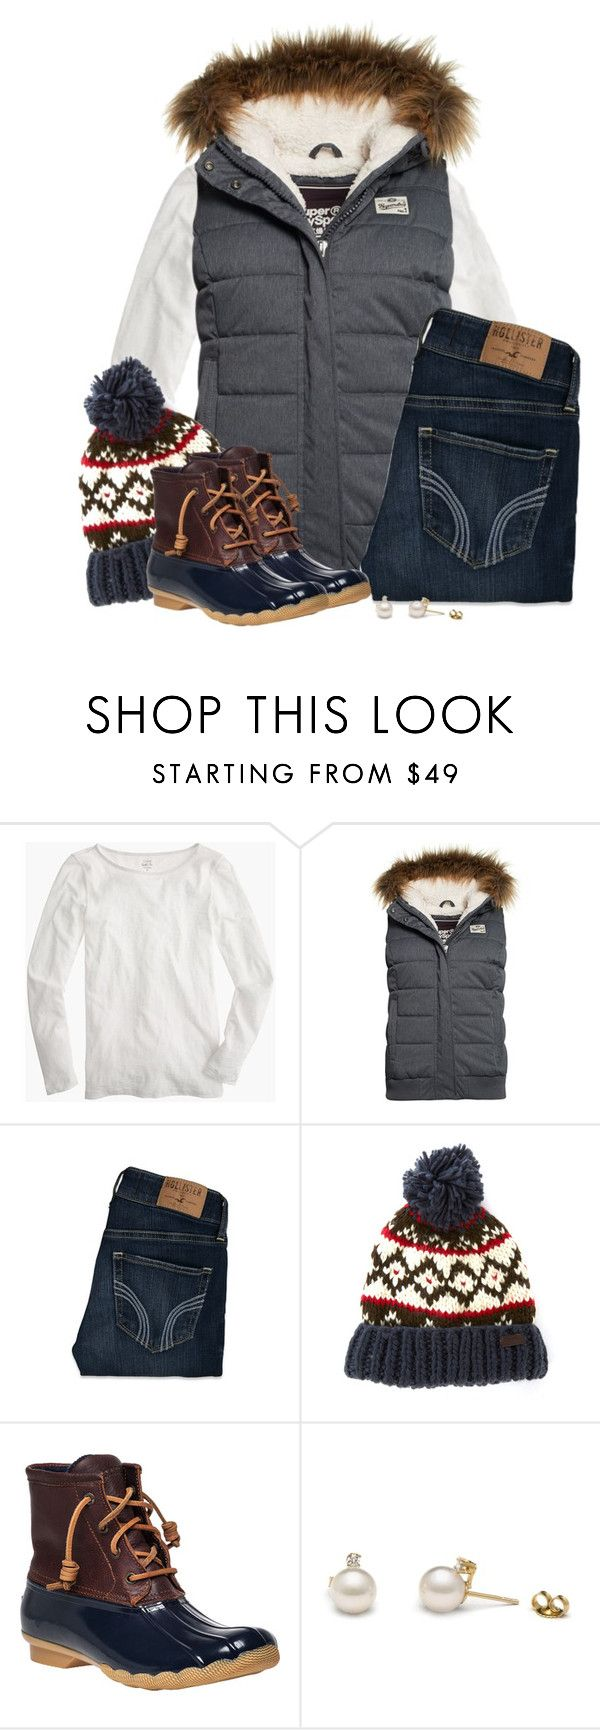 """""""Fur hooded vest, Nordic beanie & duck boots"""" by steffiestaffie ❤ liked on Polyvore featuring J.Crew, Superdry, Hollister Co., Barbour and Sperry Top-Sider"""